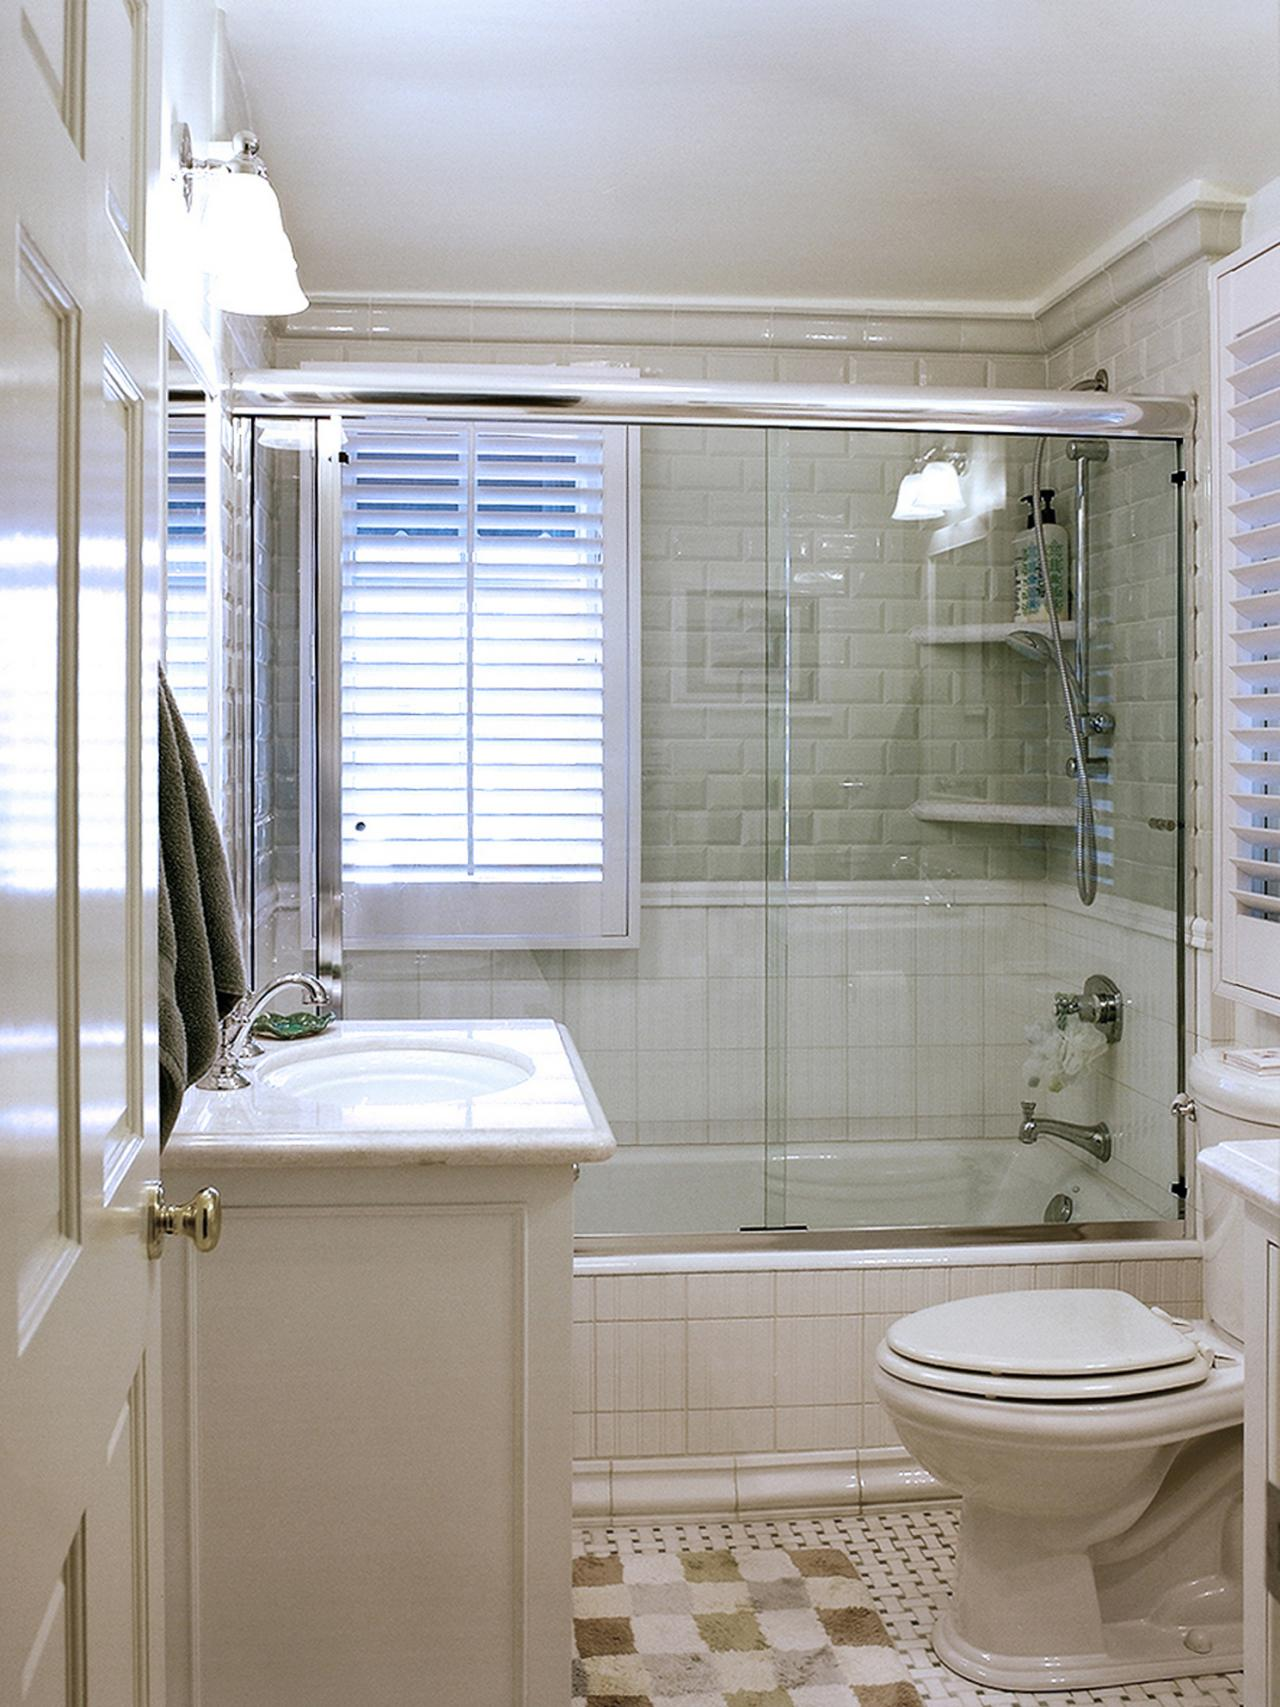 Designing a full bath hgtv for Small full bathroom designs